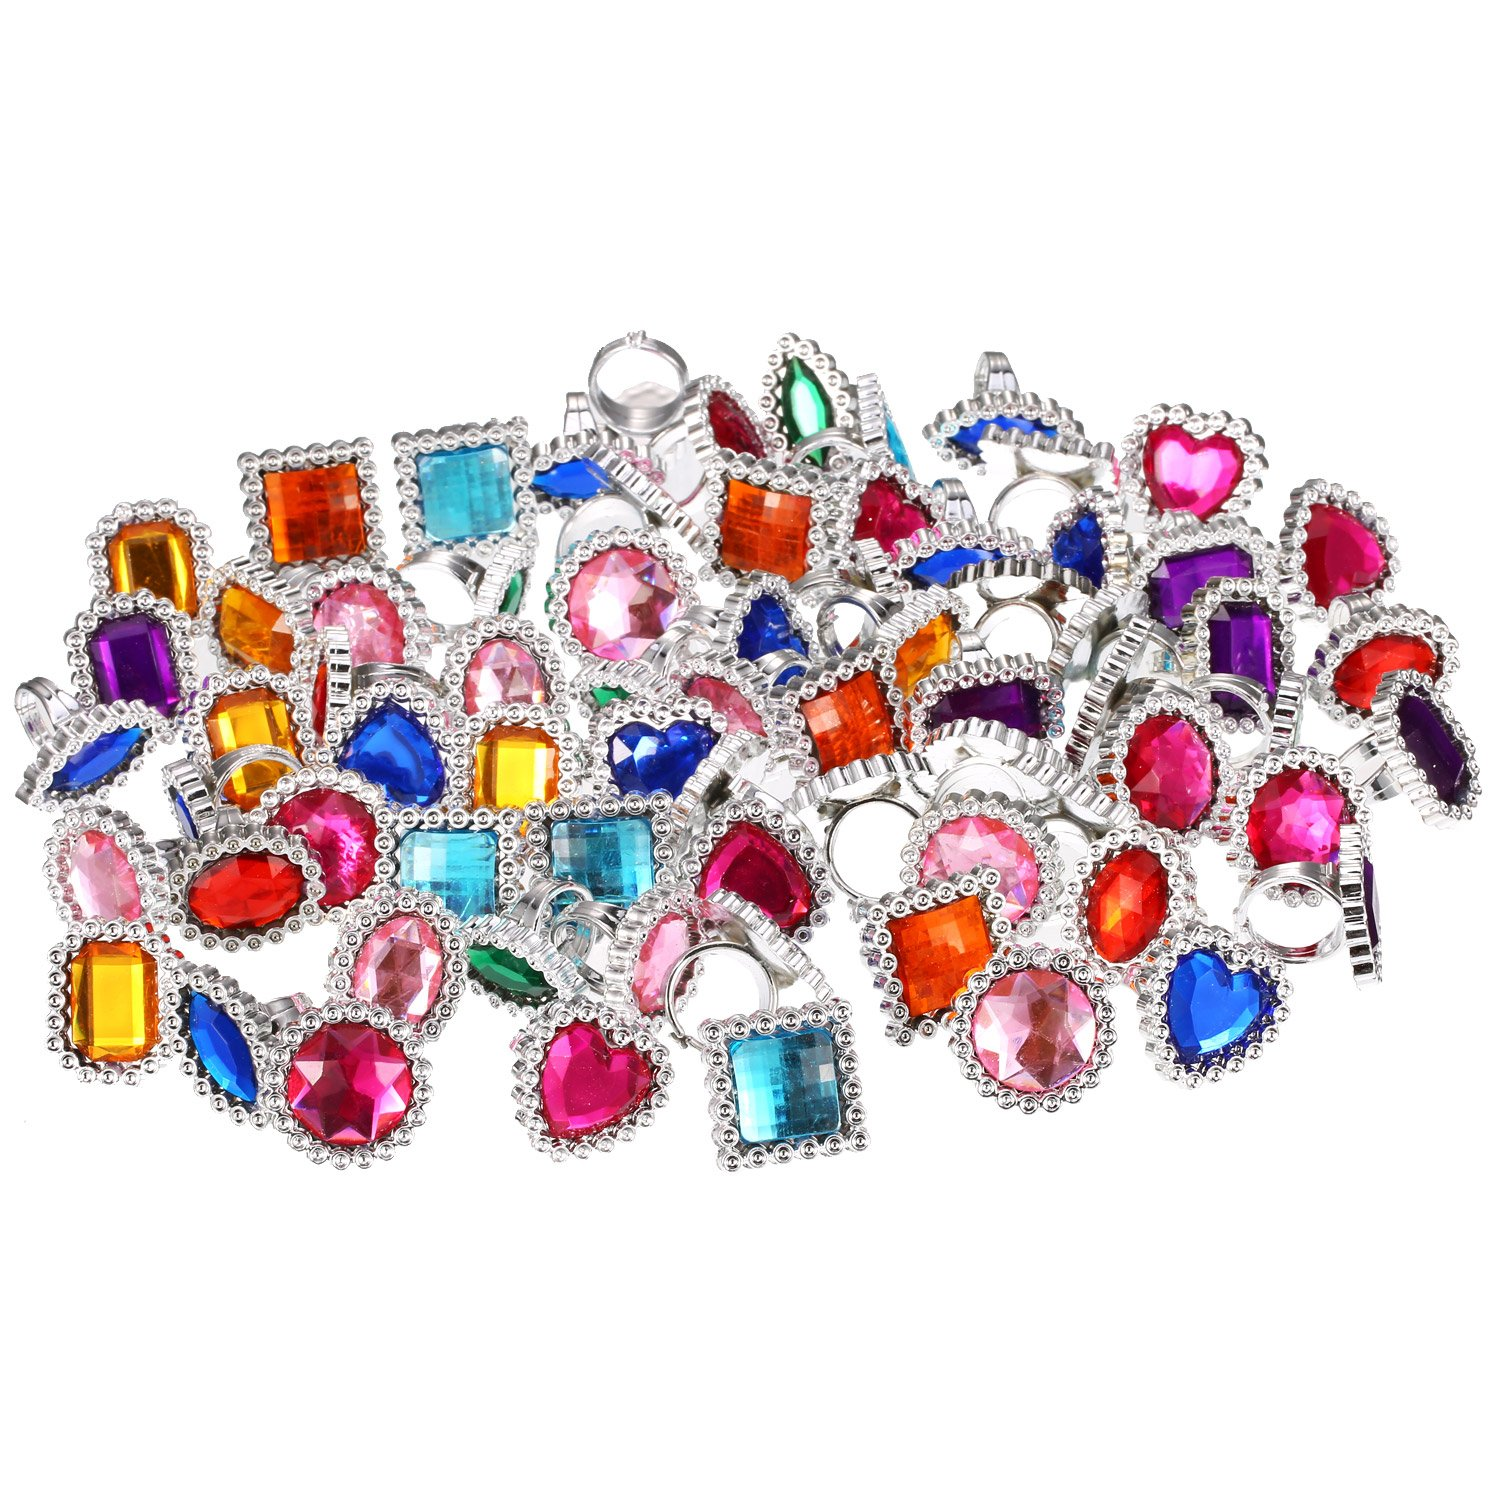 Shappy 72 Pieces Plastic Colorful Rhinestone Gem Rings Sparkle Adjustable Big Jewel Rings Princess Ring Toy Rings Girls Dress Up Accessories by Shappy